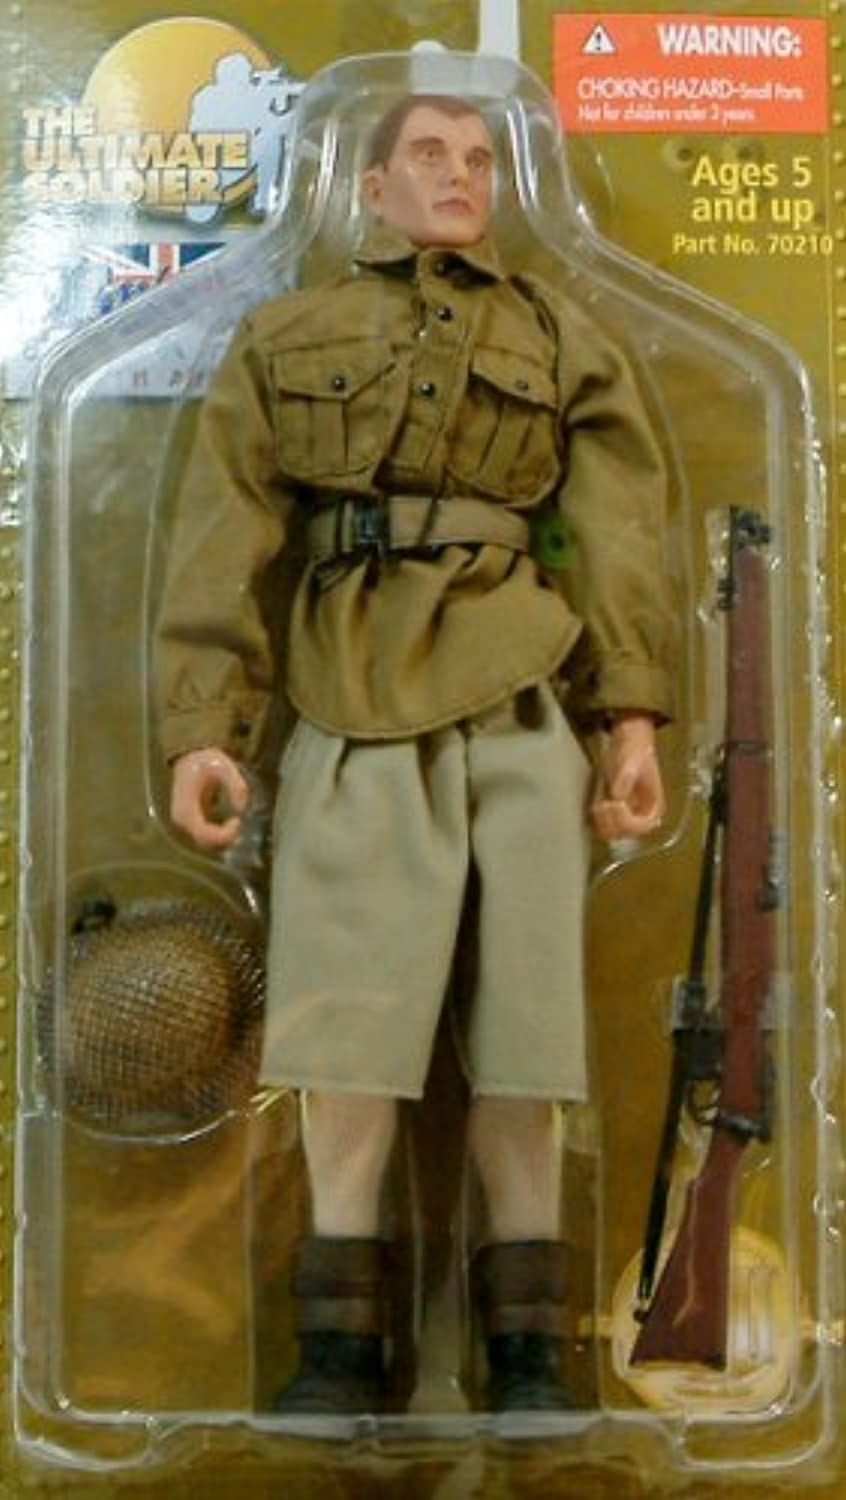 The Ultimate Soldier British 8th Army North Africa Action Figure by 21st Century Toys